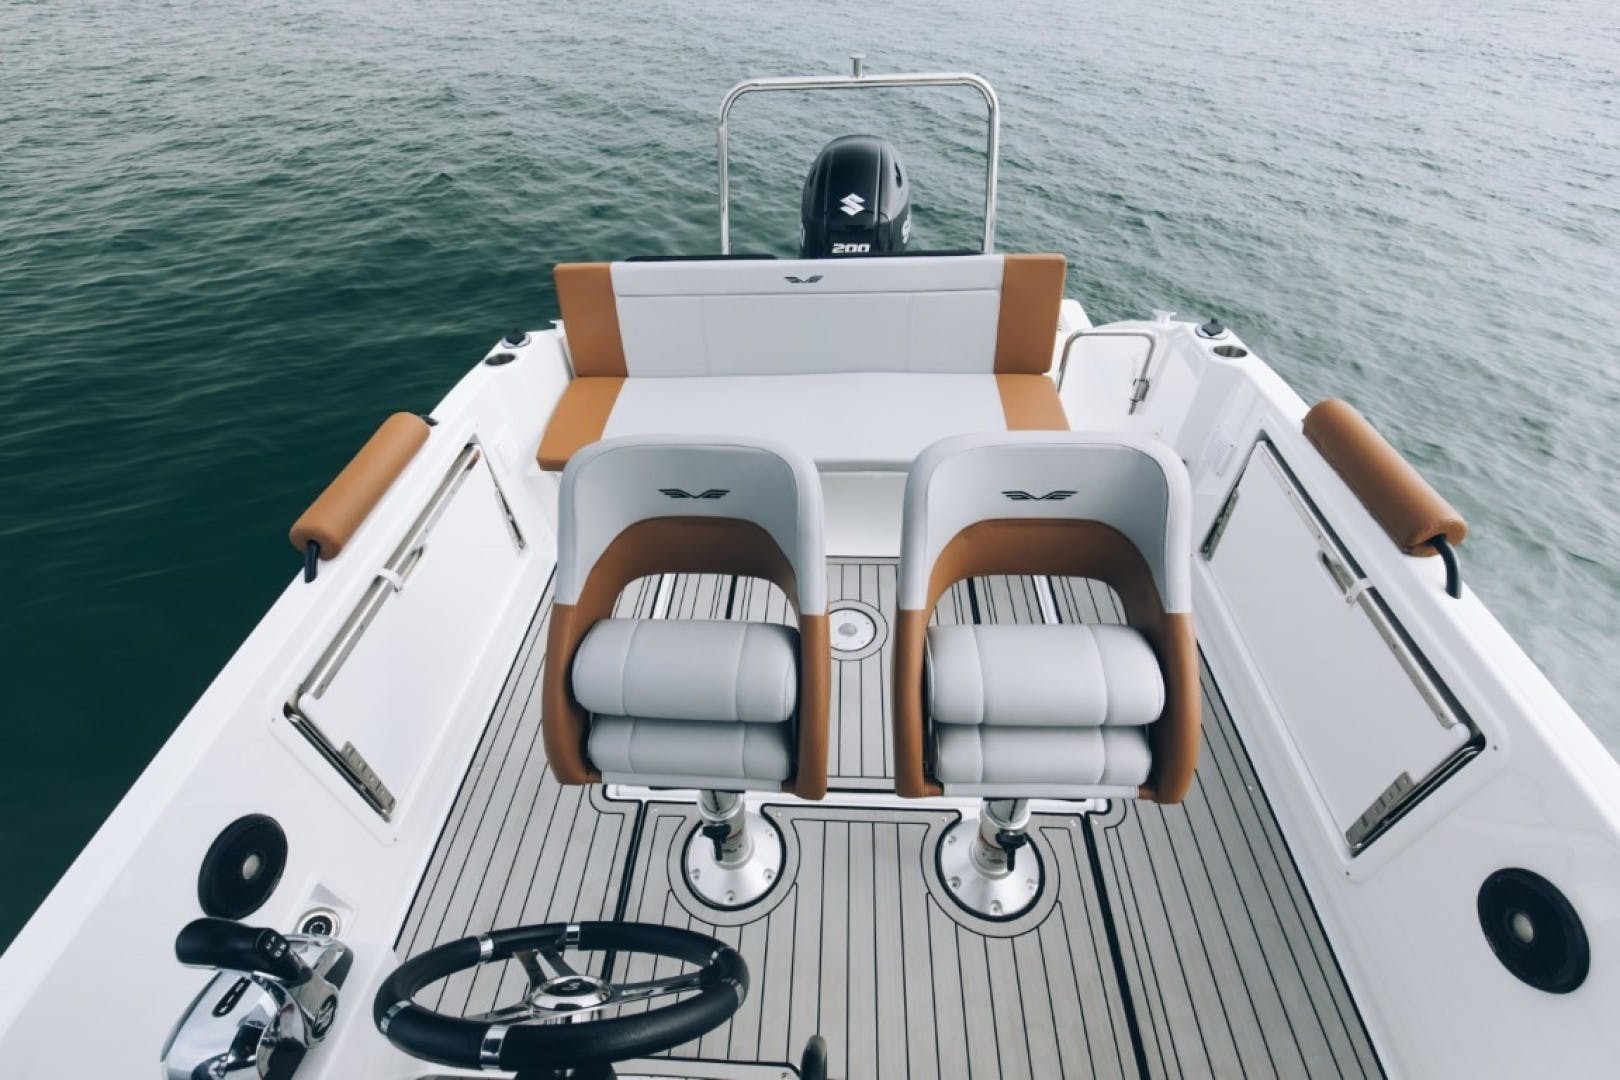 2021 Beneteau 21' Flyer 7 Spacedeck  | Picture 3 of 13